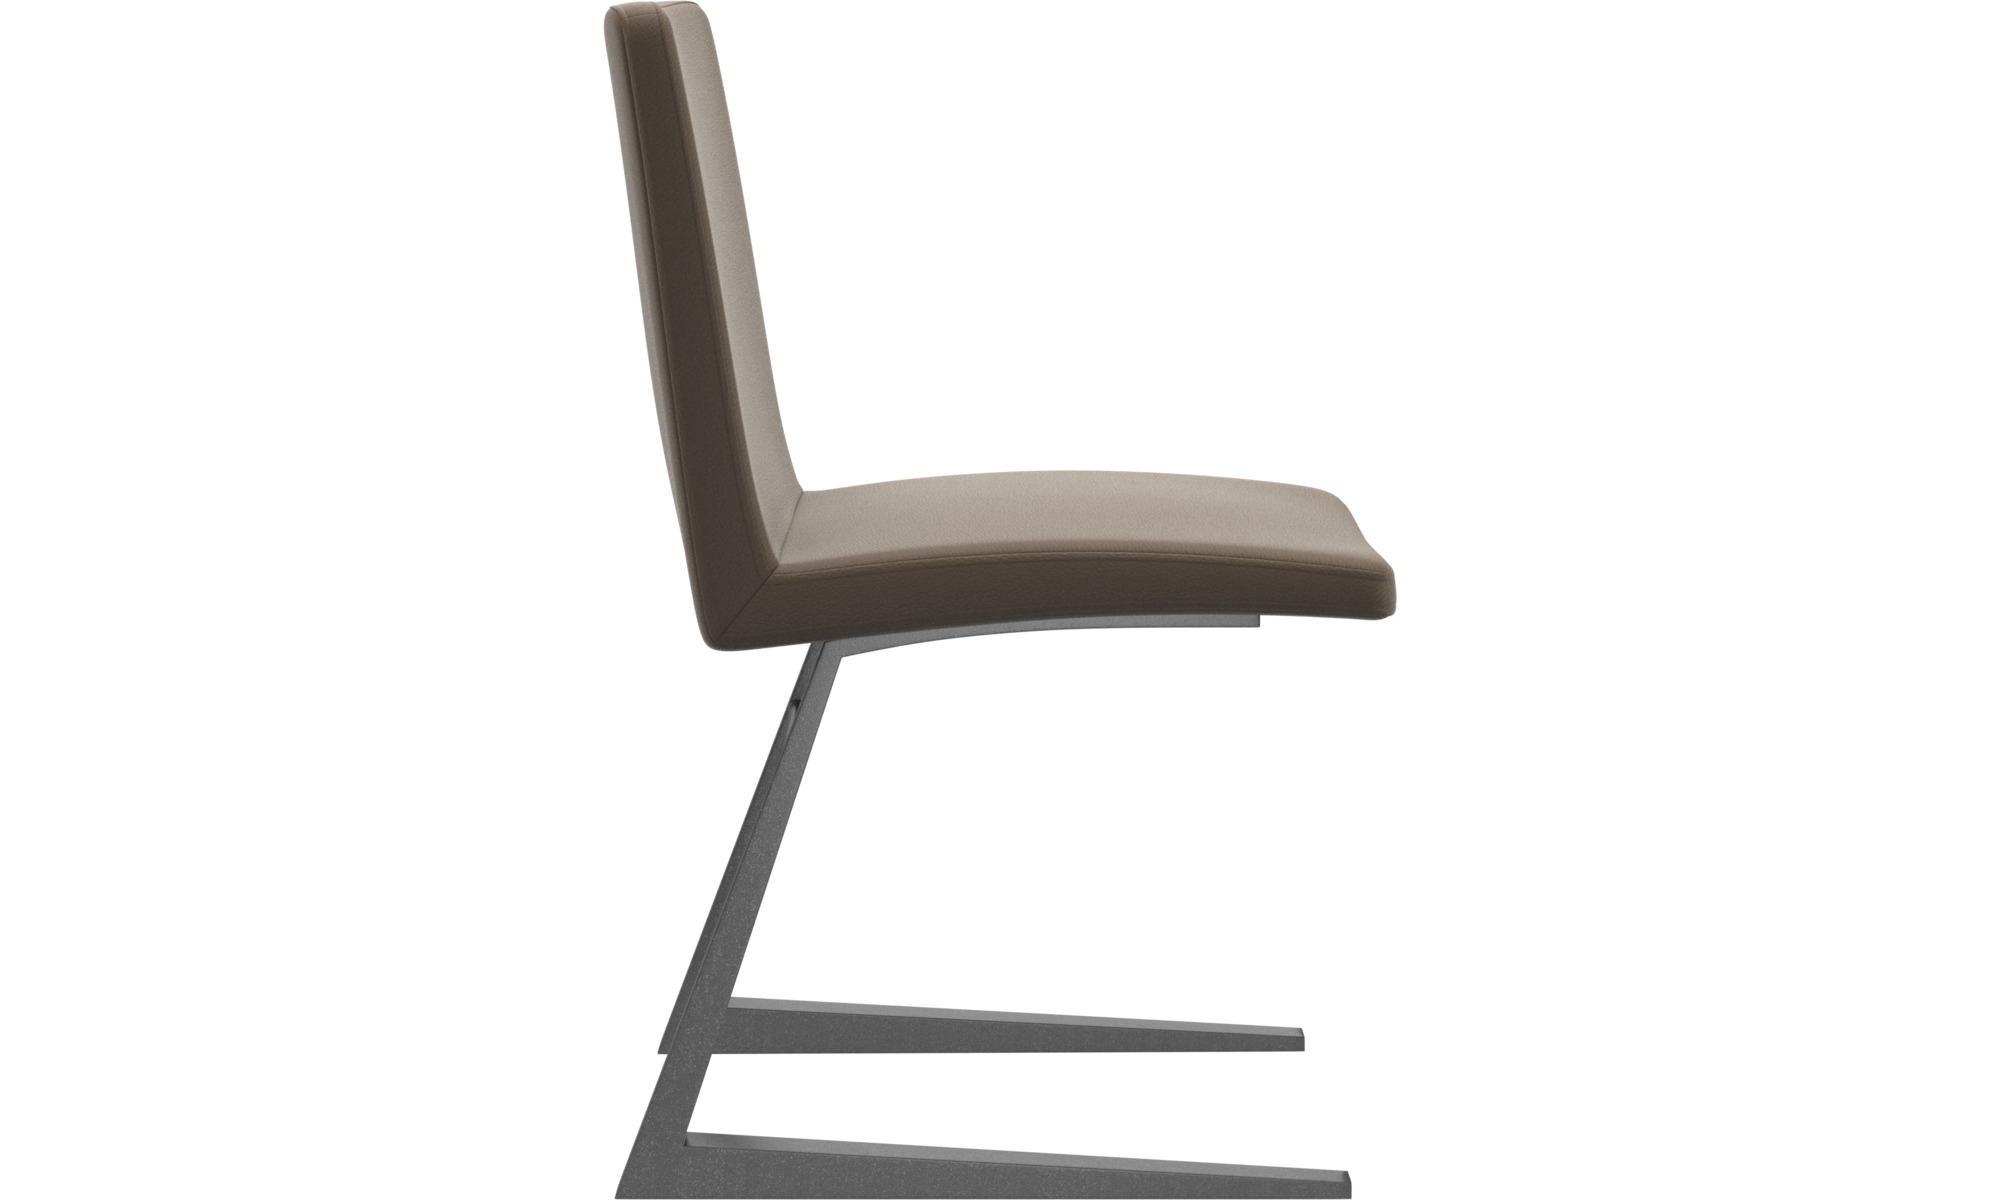 MARIPOSA DELUXE CHAIR - Stone Estoril leather 0953 - SET OF 4